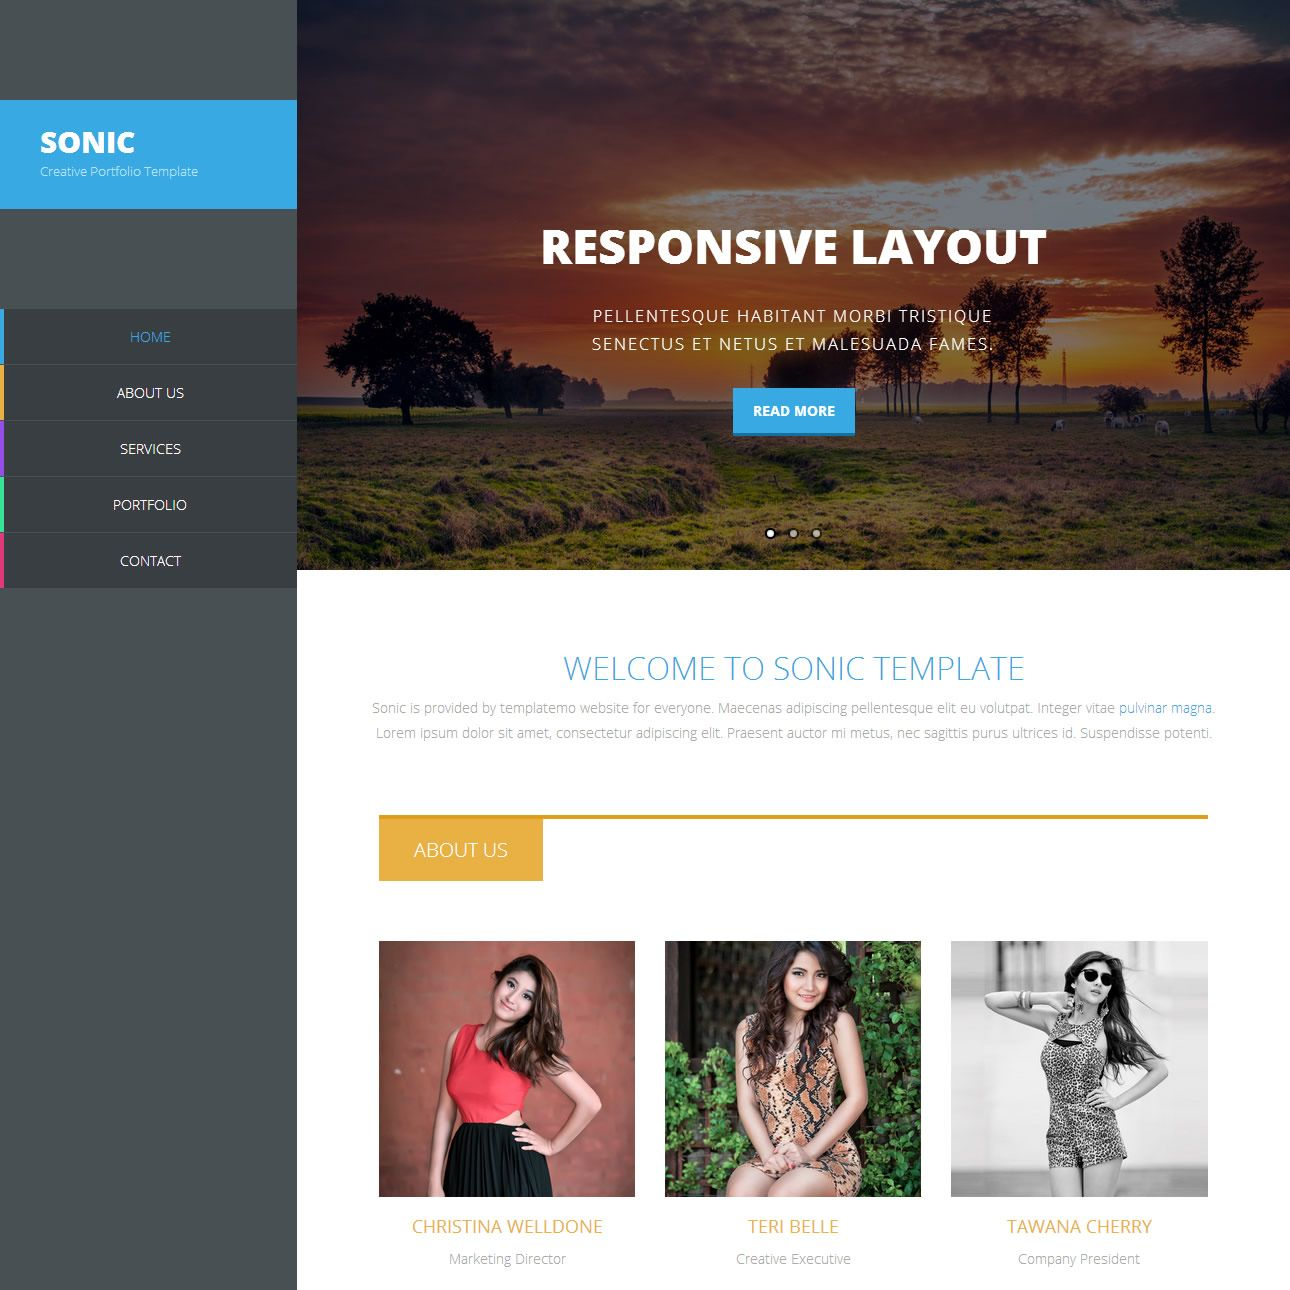 Sonic Is Free Responsive Template Bootstrap Version Homepage Uses Flexslider This Design Is Based On And Suitable For Creative Portfolio Showcase